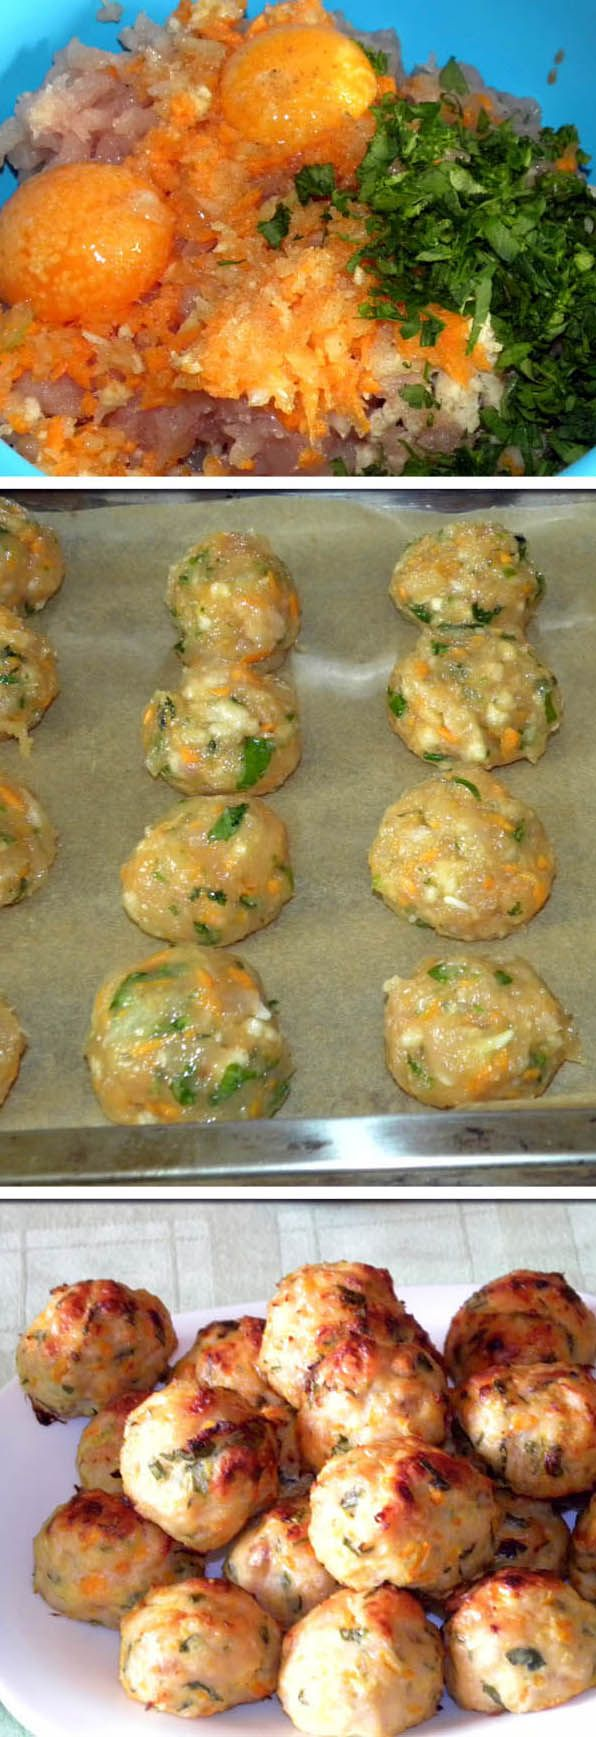 Baked chicken meatballs..Very easy to do !